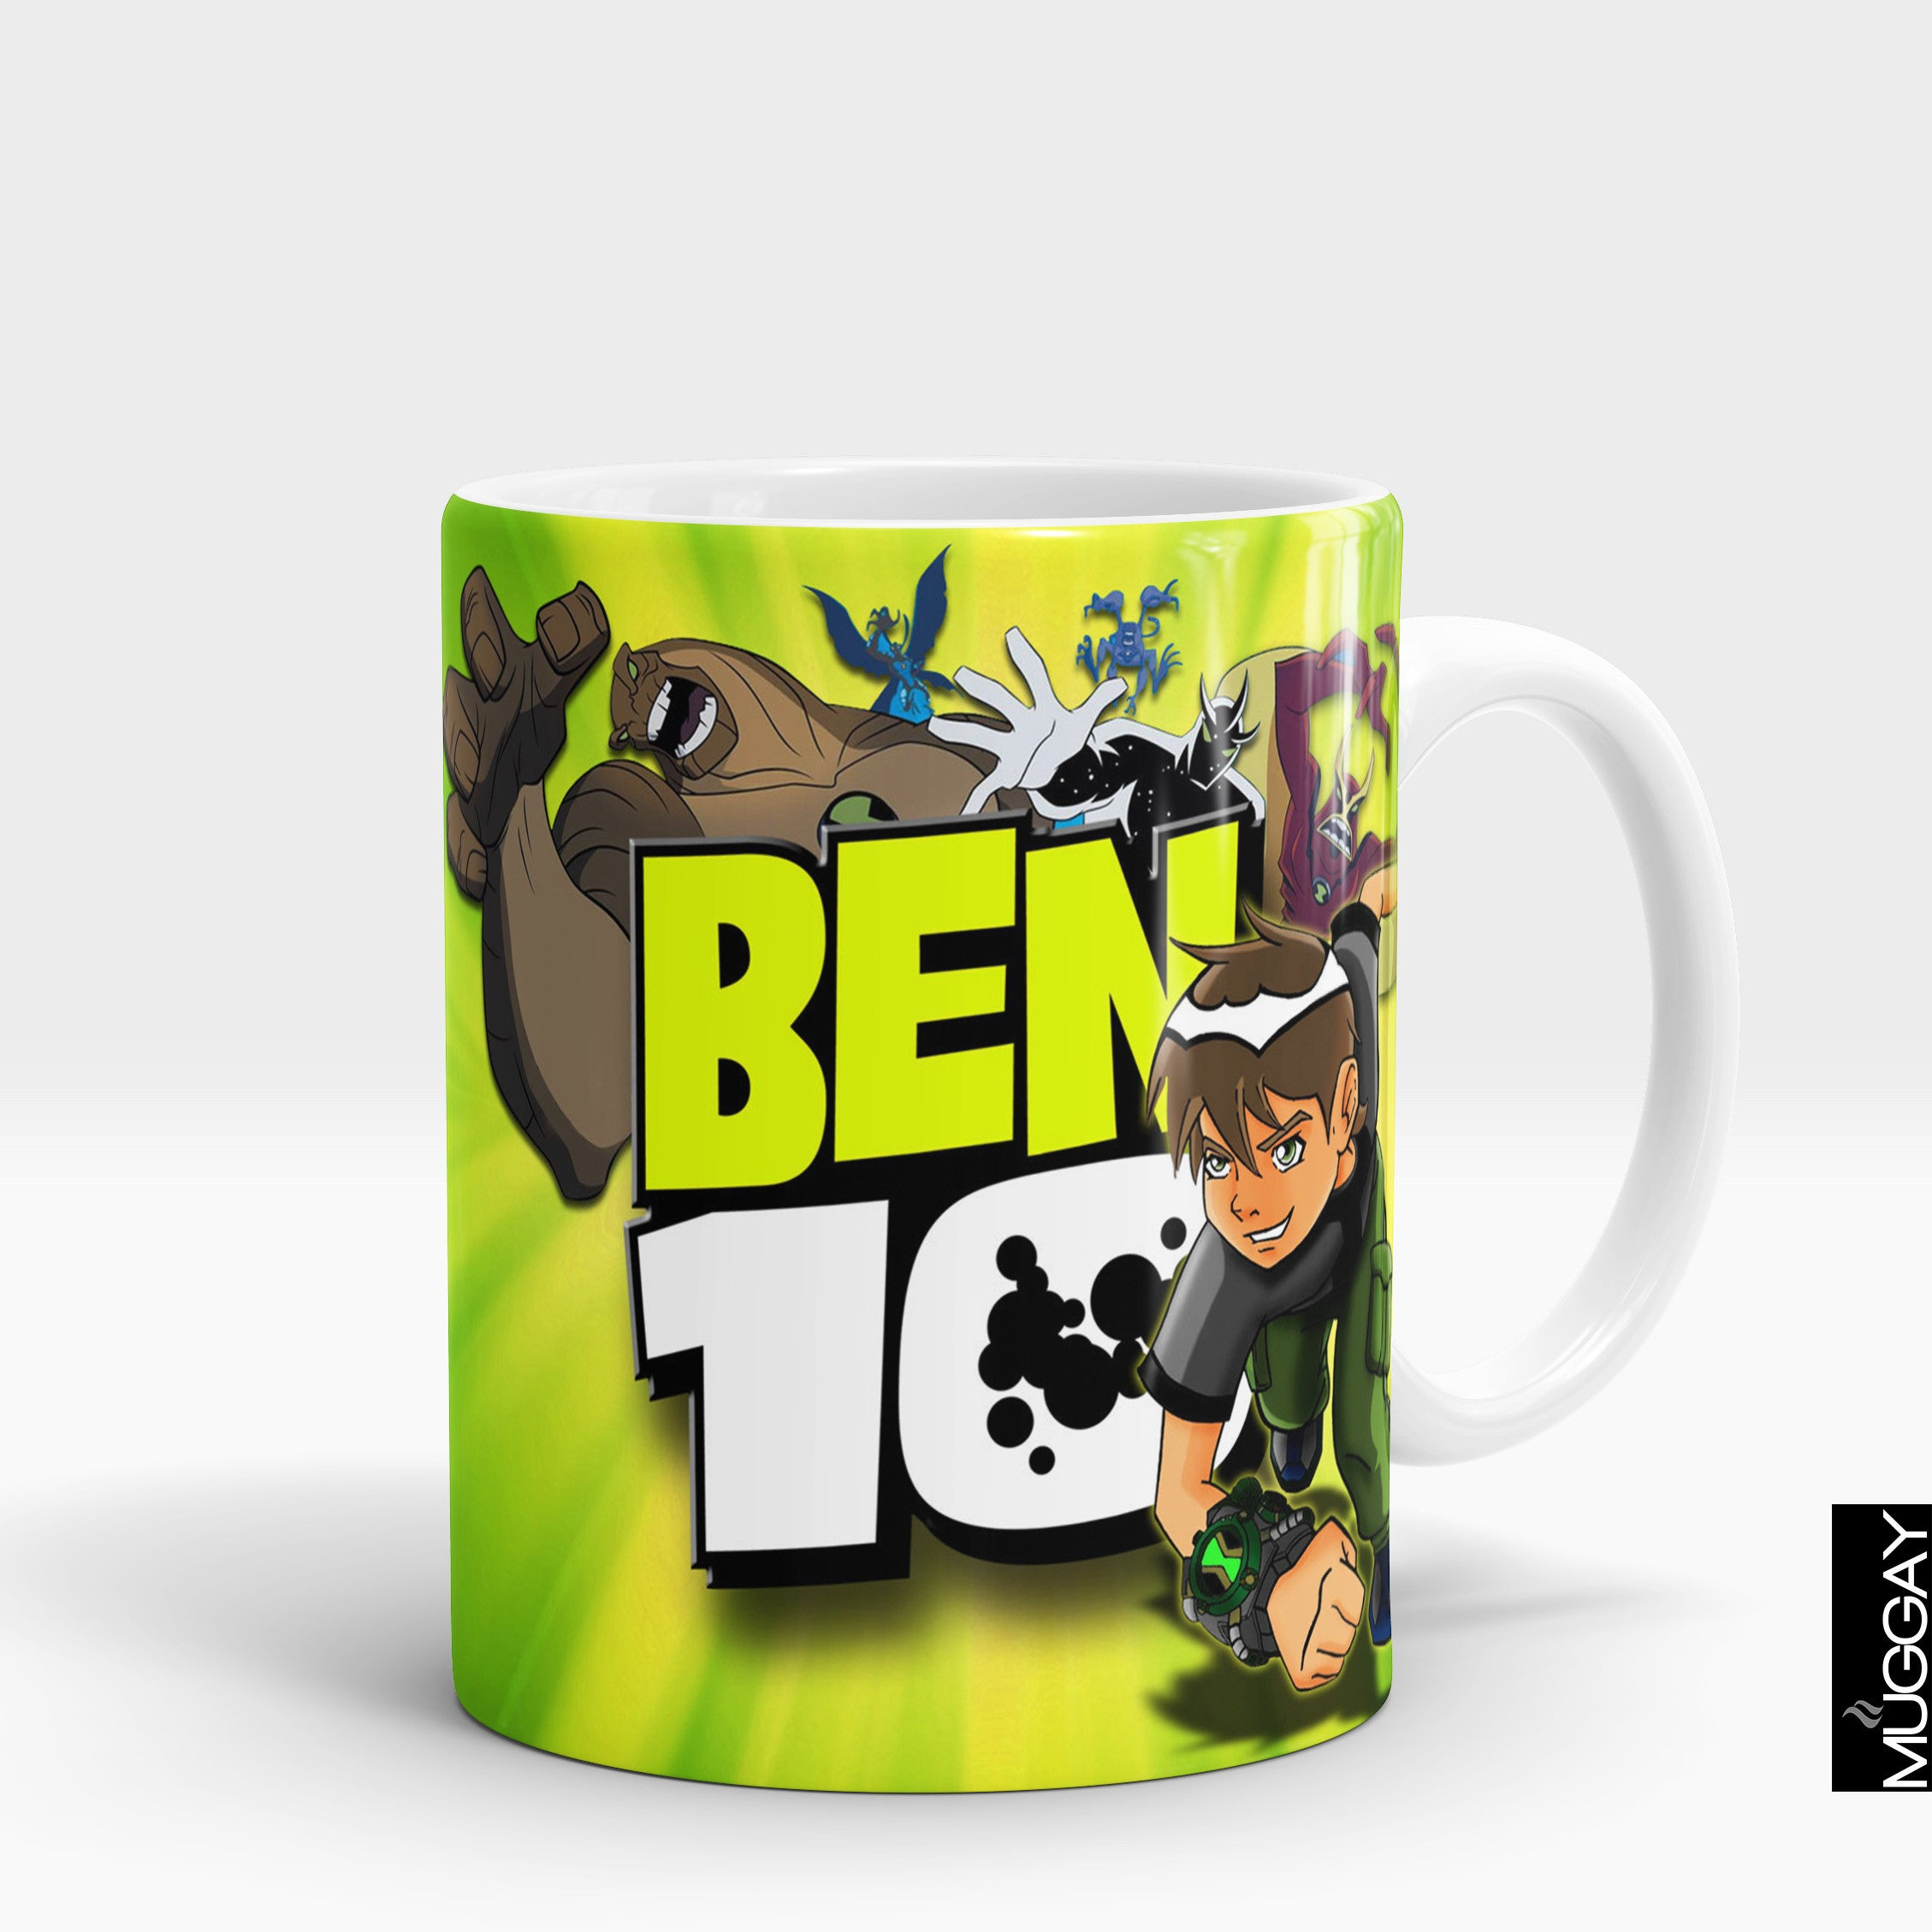 Ben 10 mugs - ben4 - Muggay.com - Mugs - Printing shop - truck Art mugs - Mug printing - Customized printing - Digital printing - Muggay